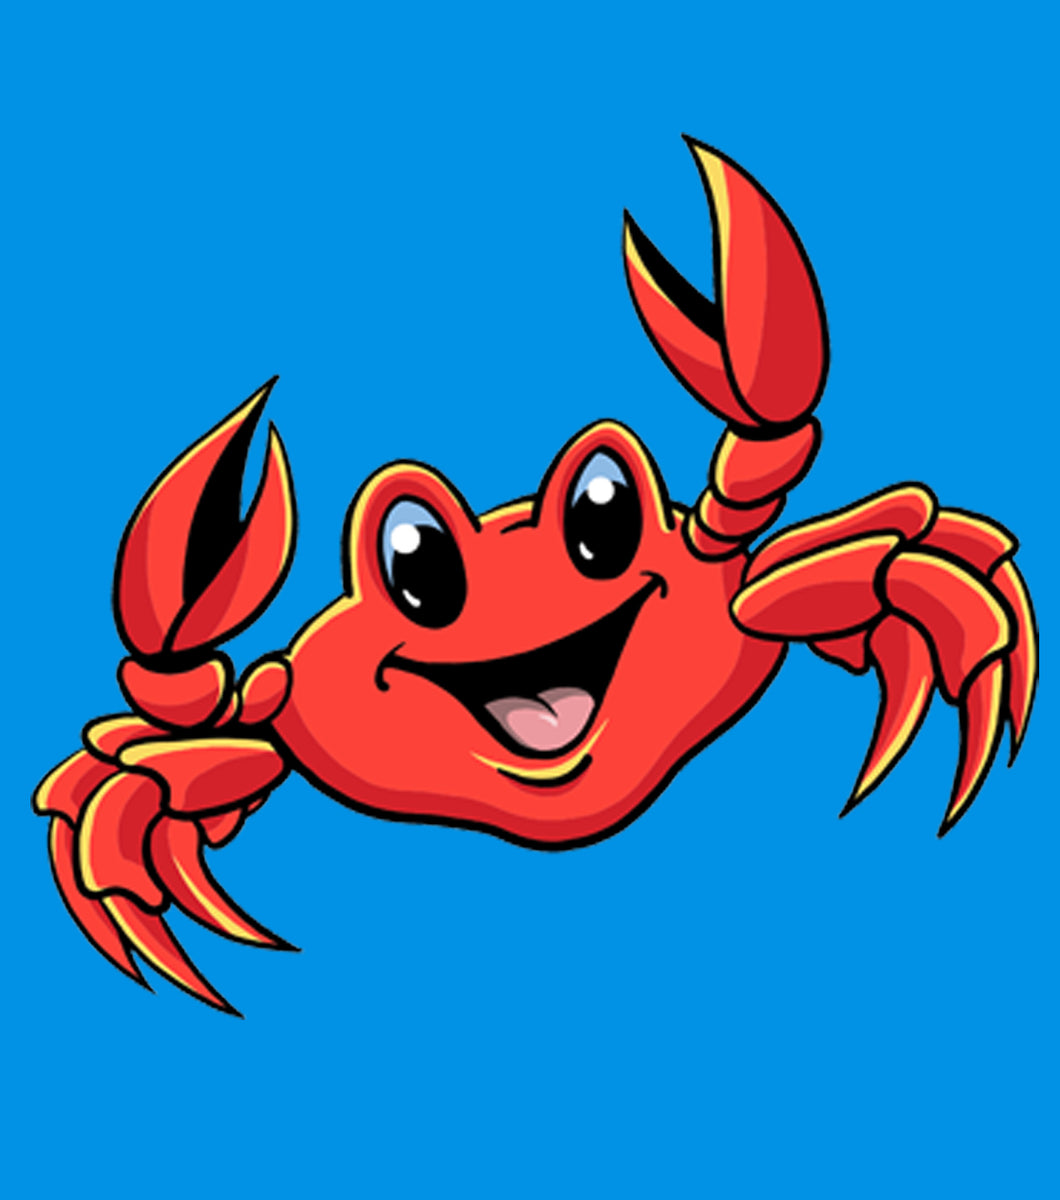 Smiley Crab- Cute artwork of smiling cartoon crab